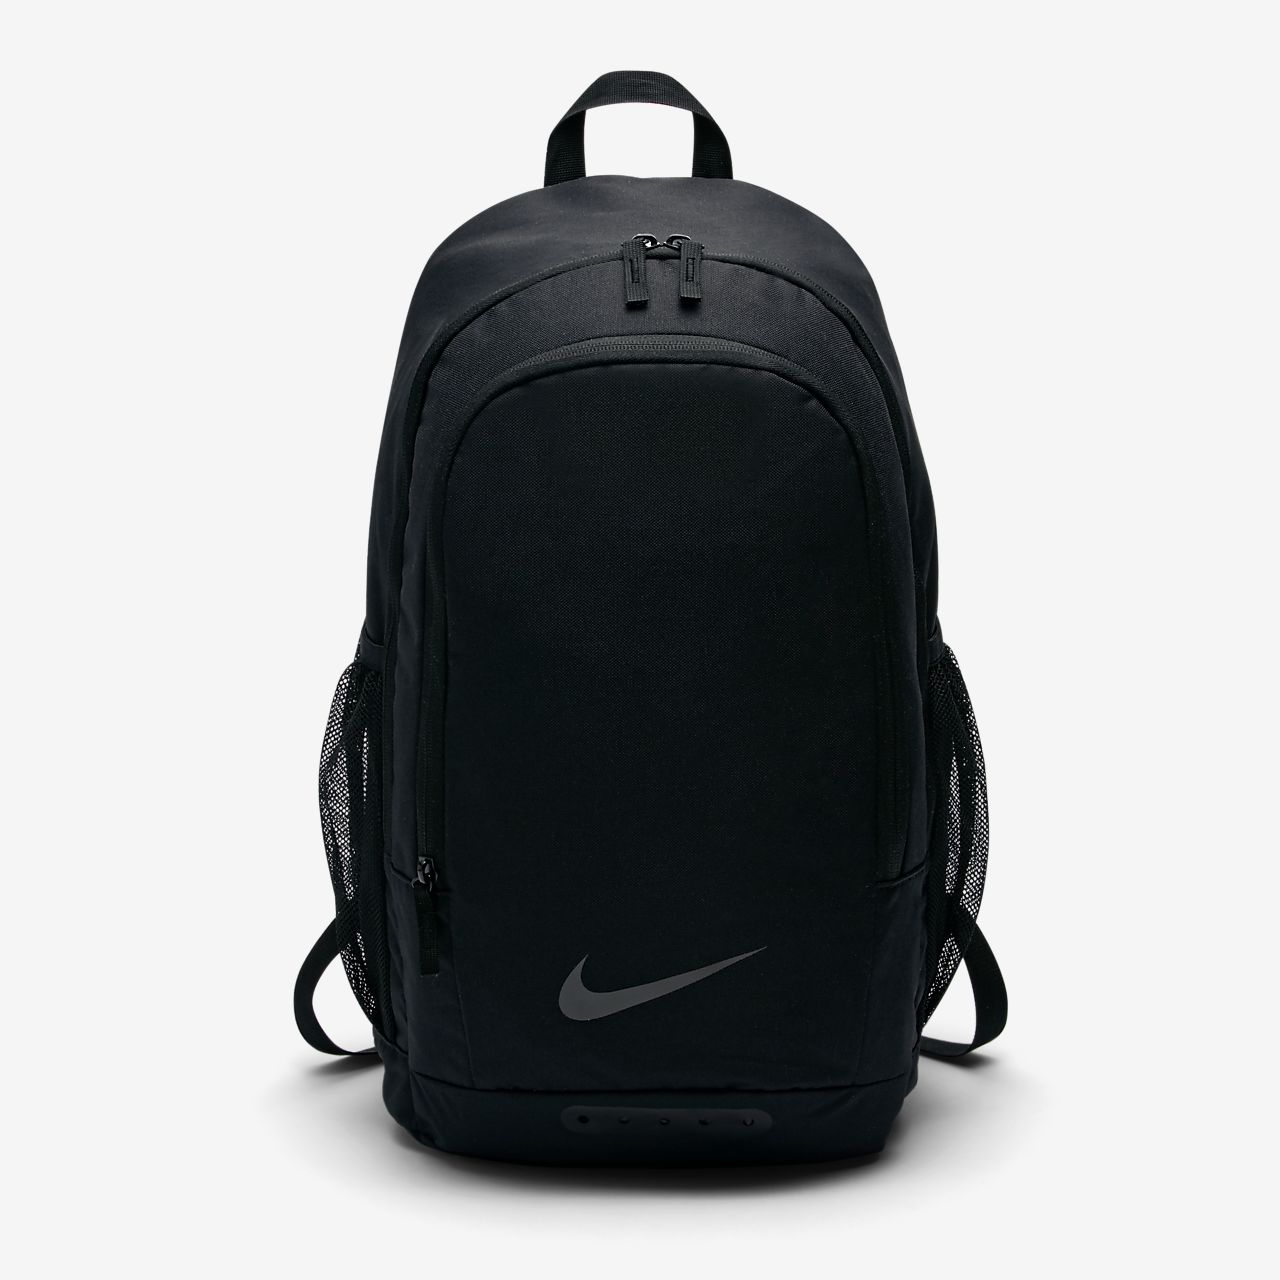 11cb8c03c7e3 Low Resolution Nike Academy Football Backpack Nike Academy Football Backpack